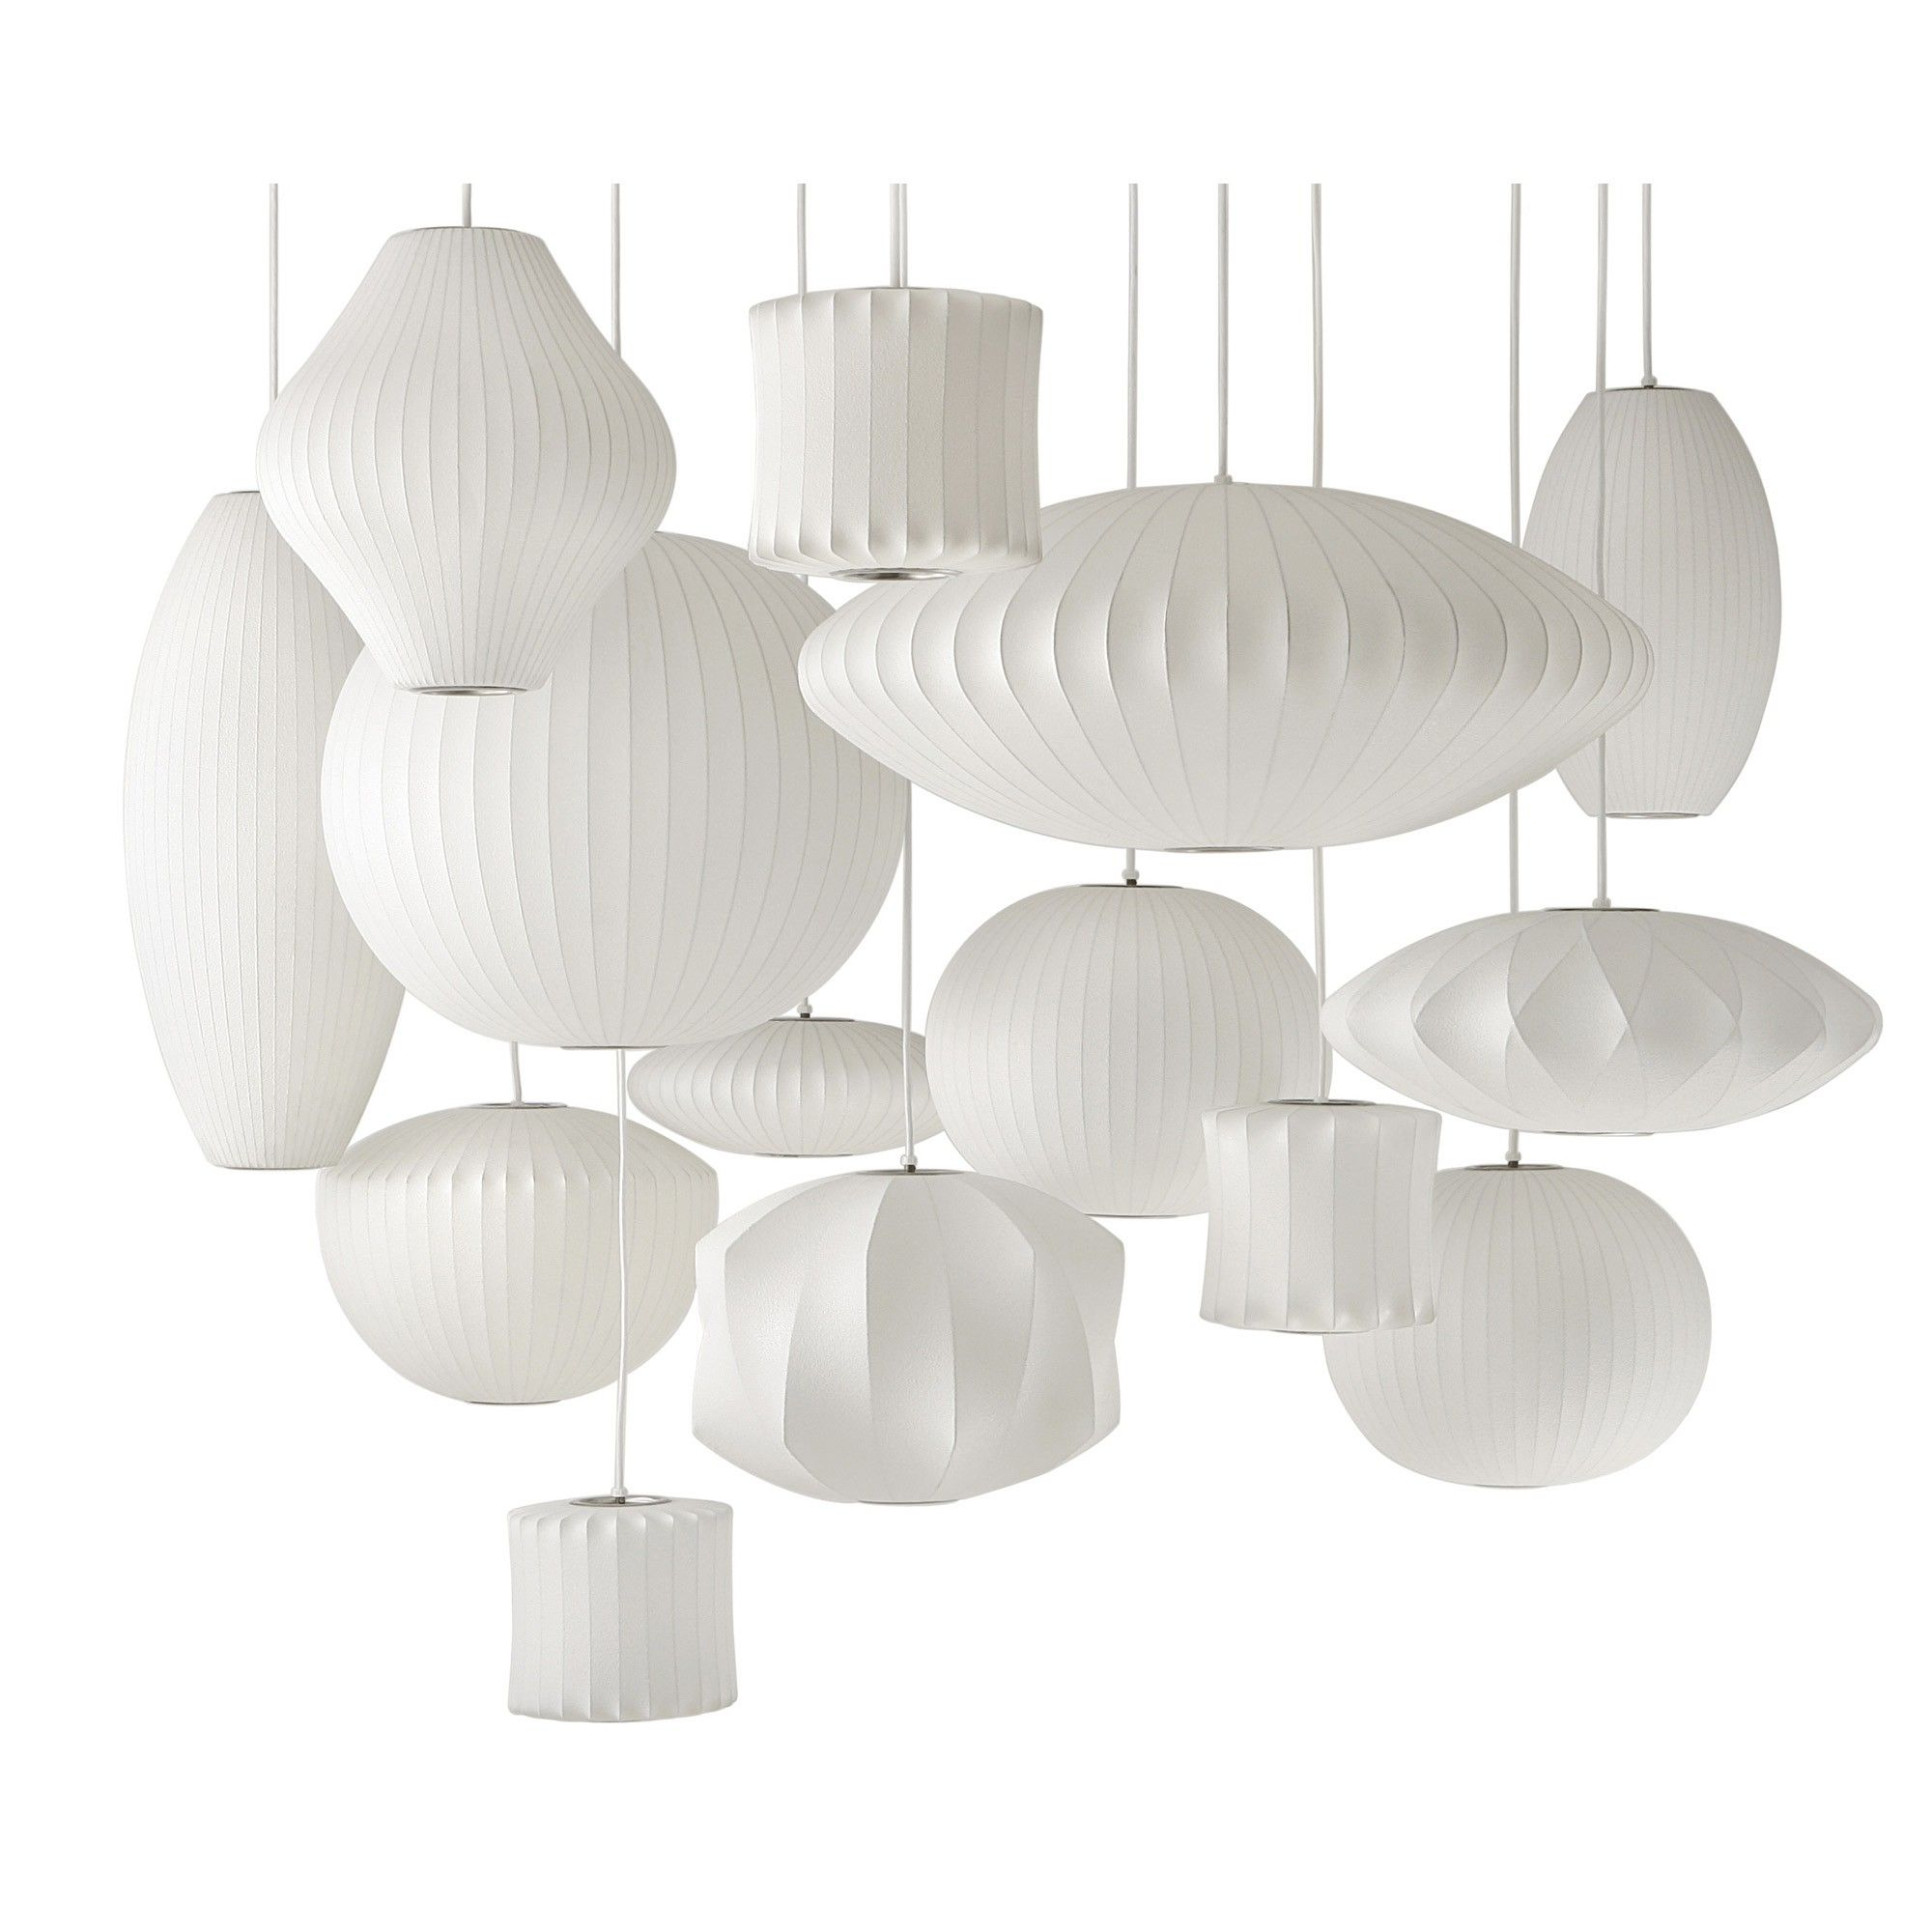 George Nelson pendant lamps